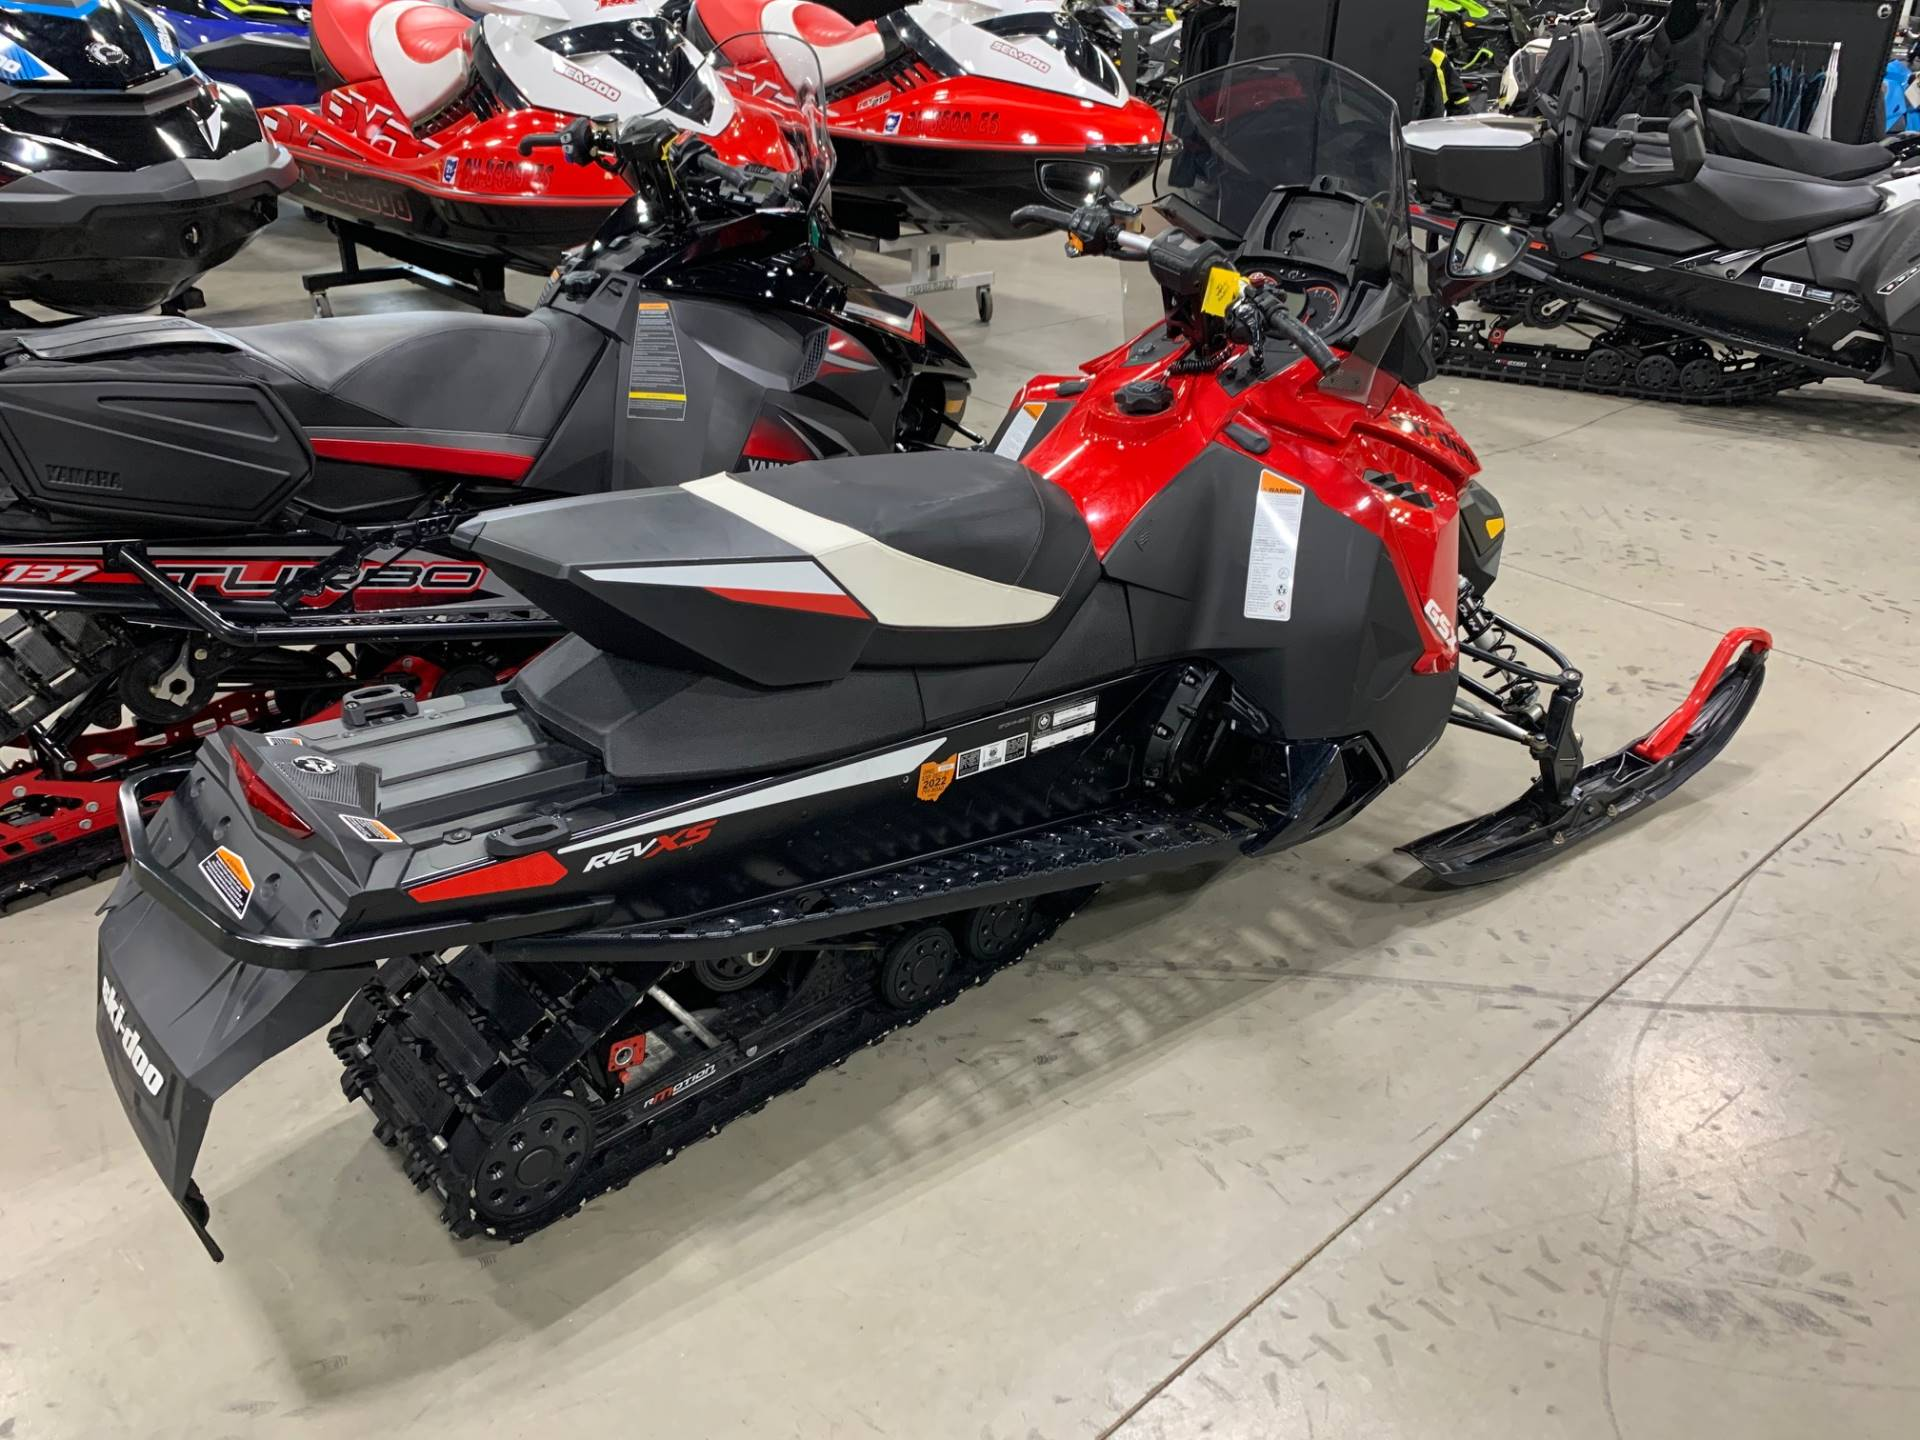 2015 Ski-Doo GSX® LE ACE™ 900 in Huron, Ohio - Photo 3